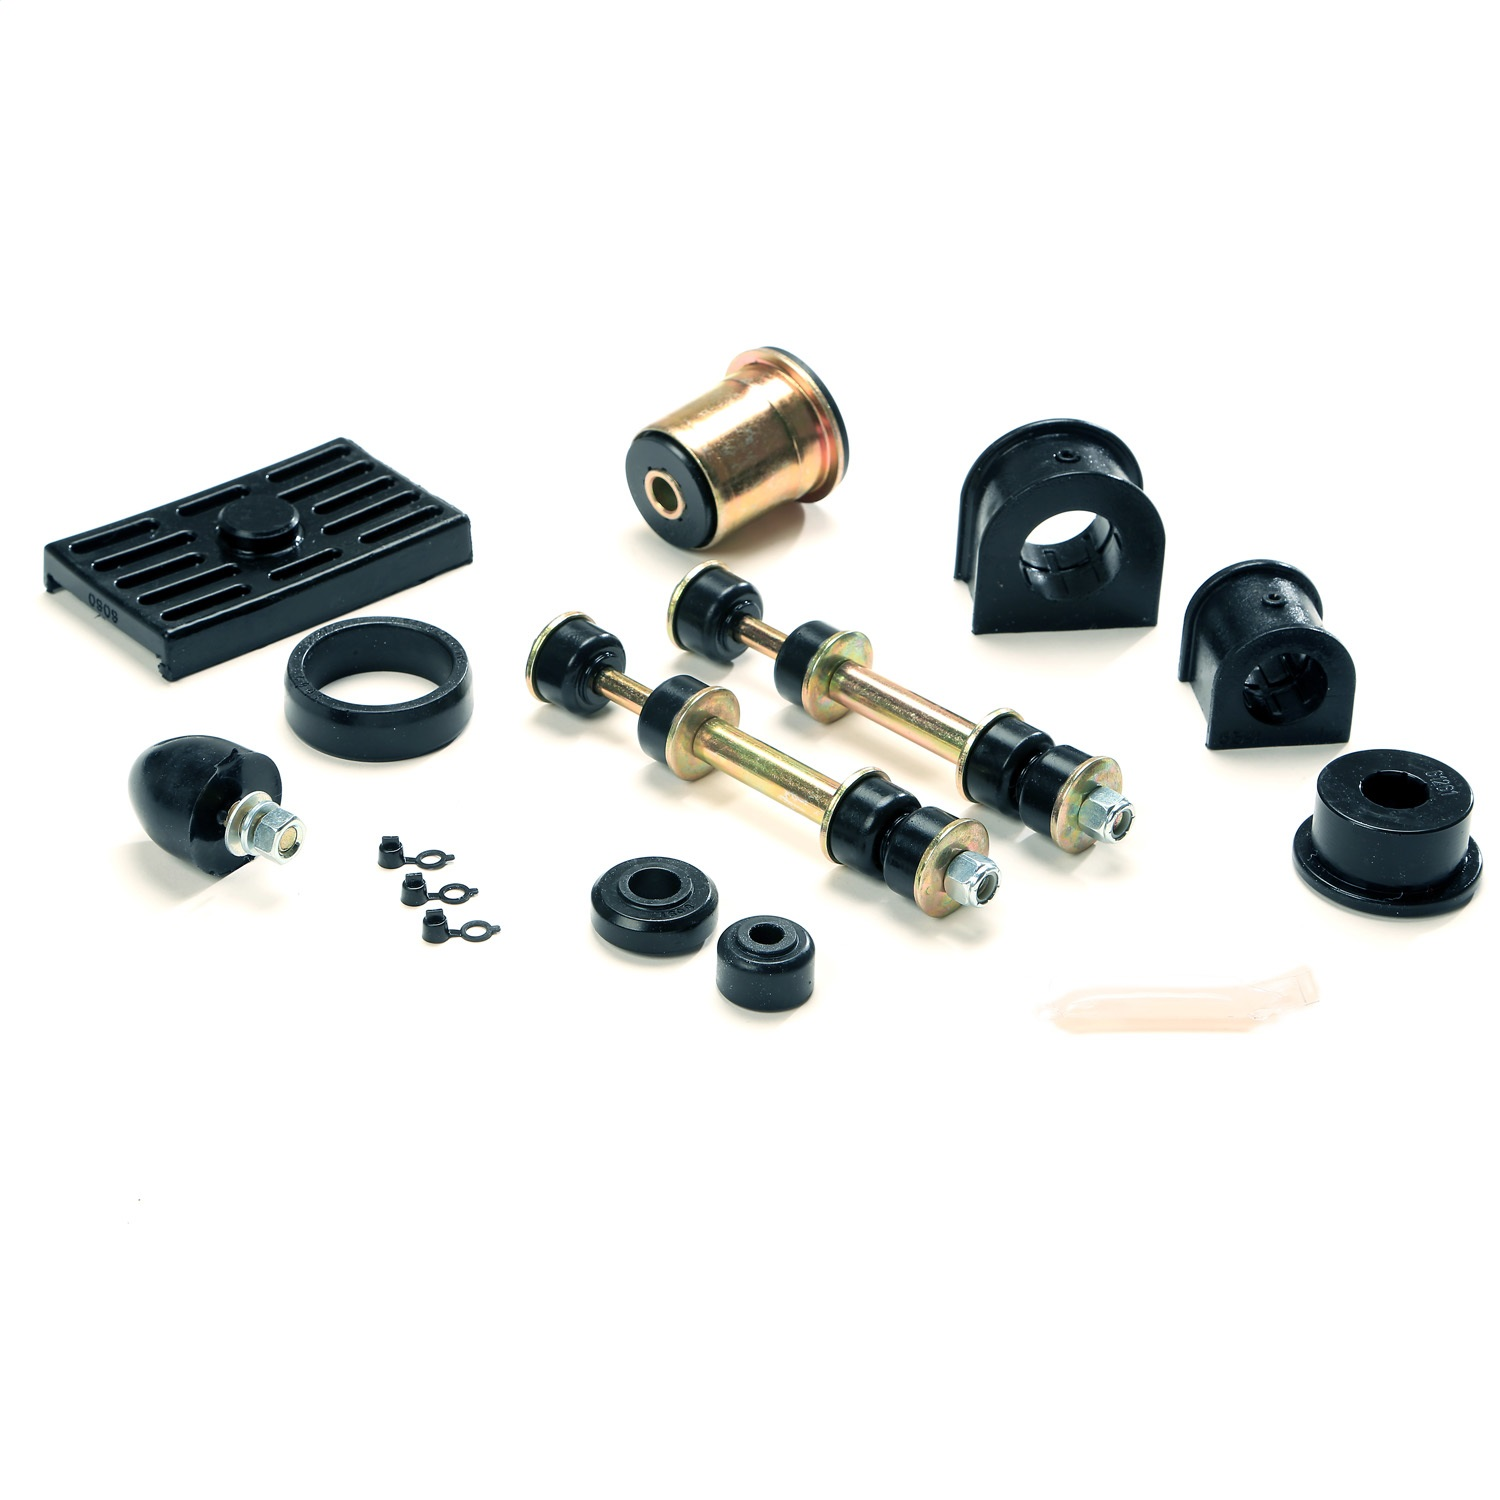 Hotchkis Performance Suspension Stabilizer Bar